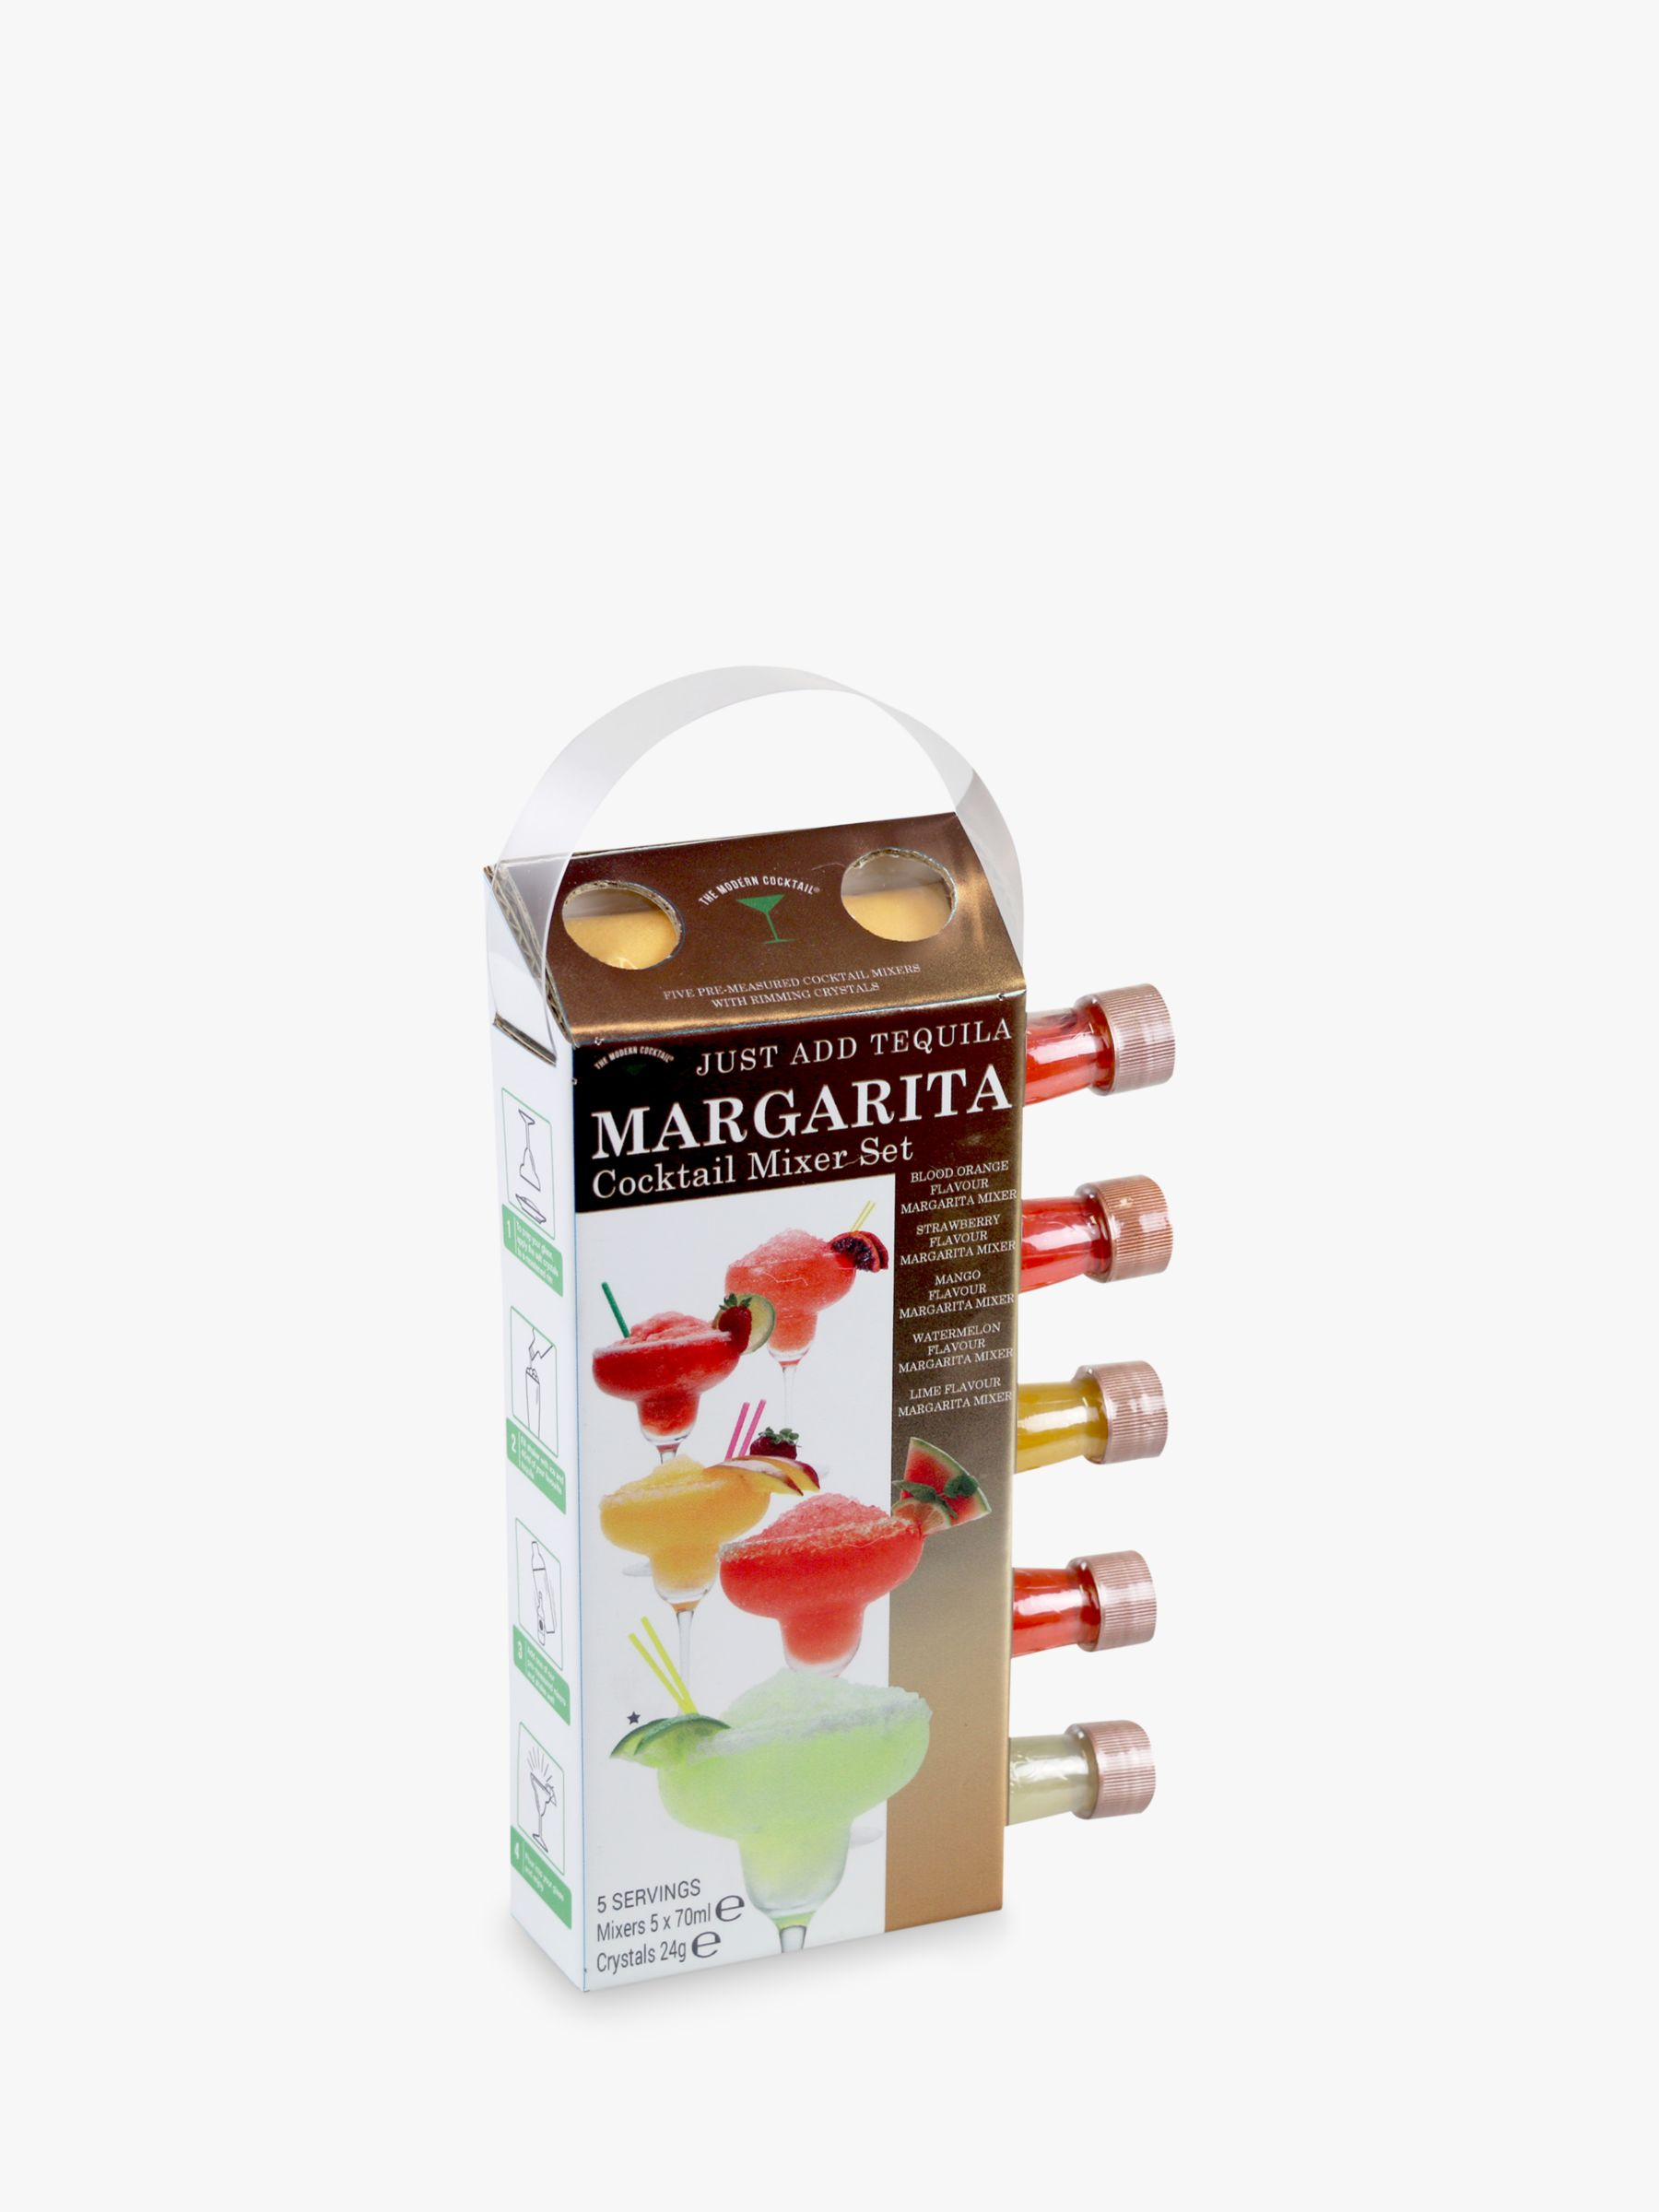 The Modern Cocktail The Modern Cocktail Margaritas Mixers, Pack of 5